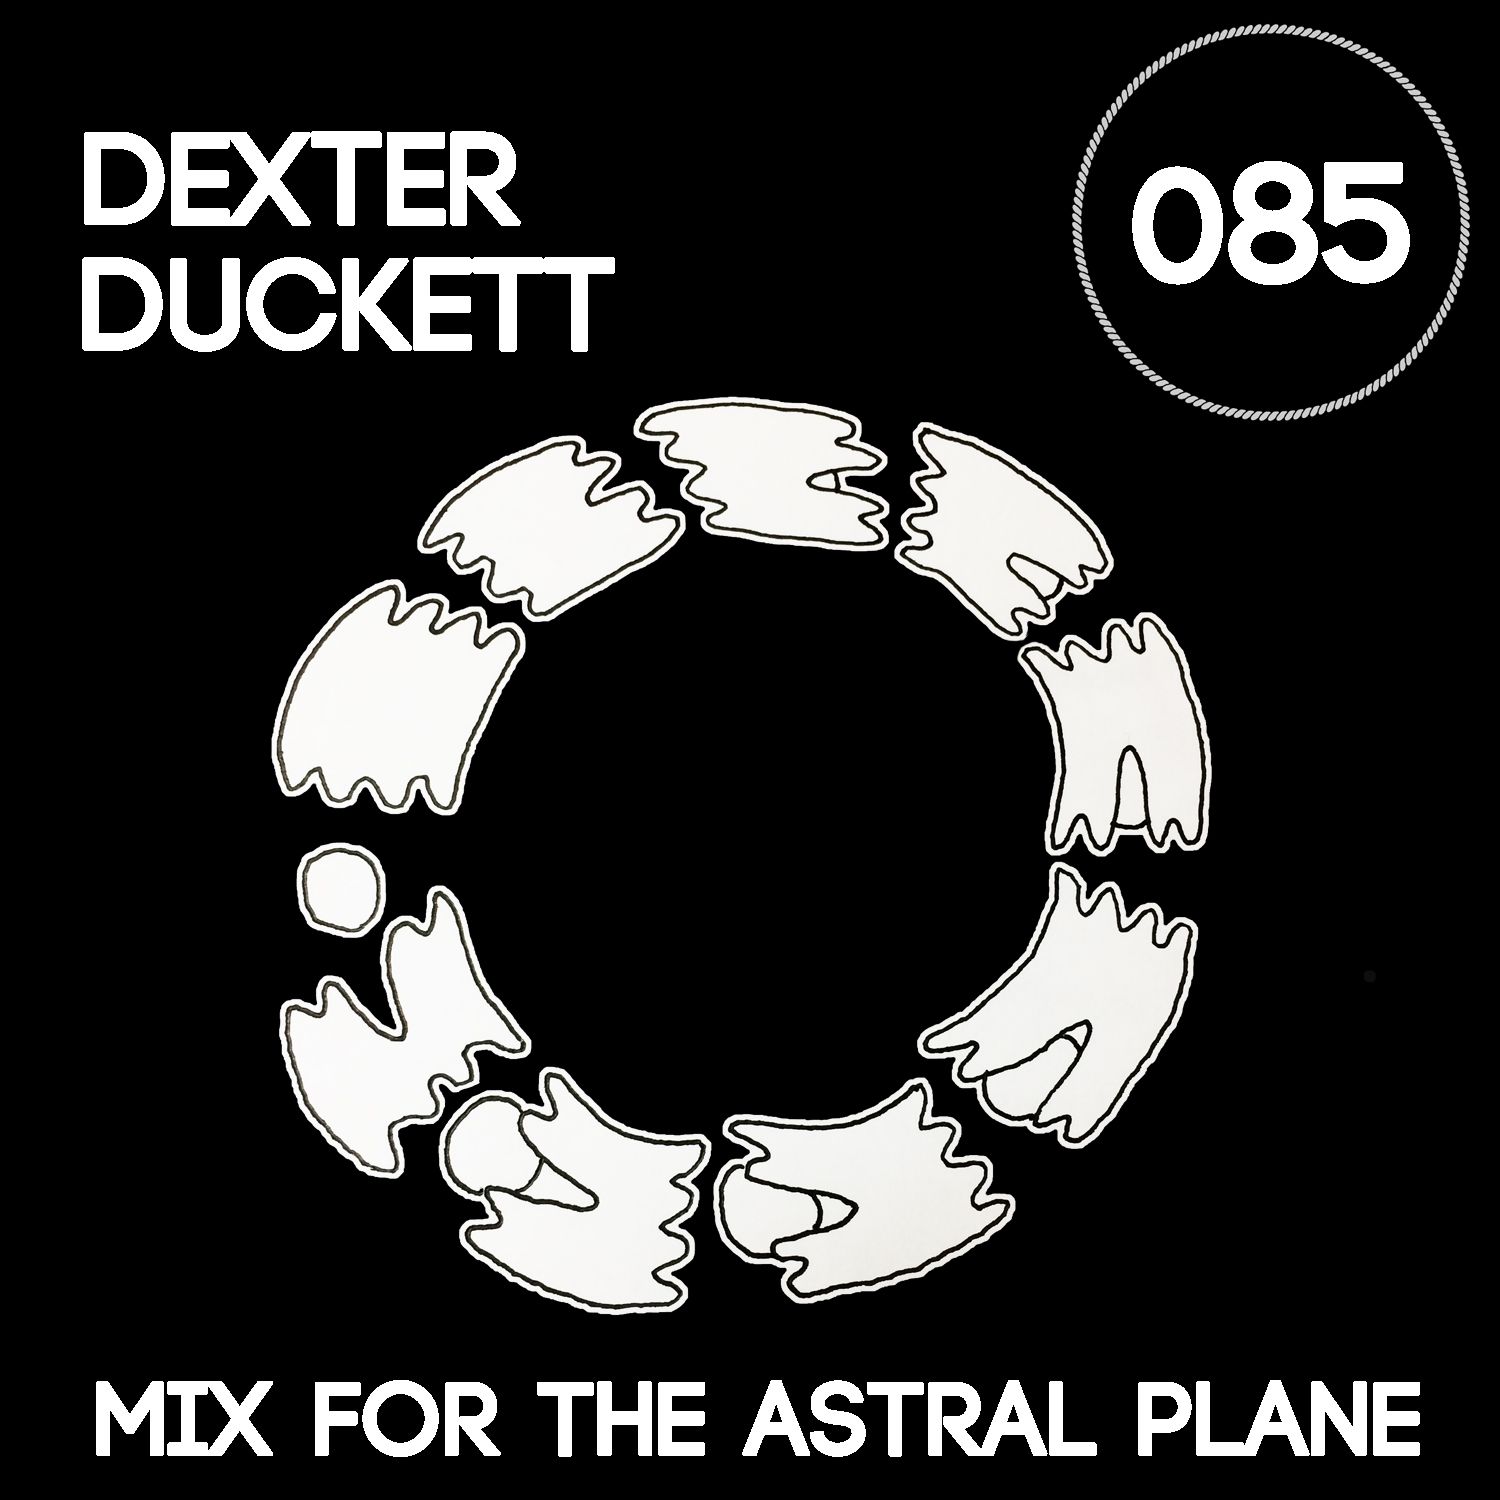 Dexter Duckett Mix For The Astral Plane | The Astral Plane